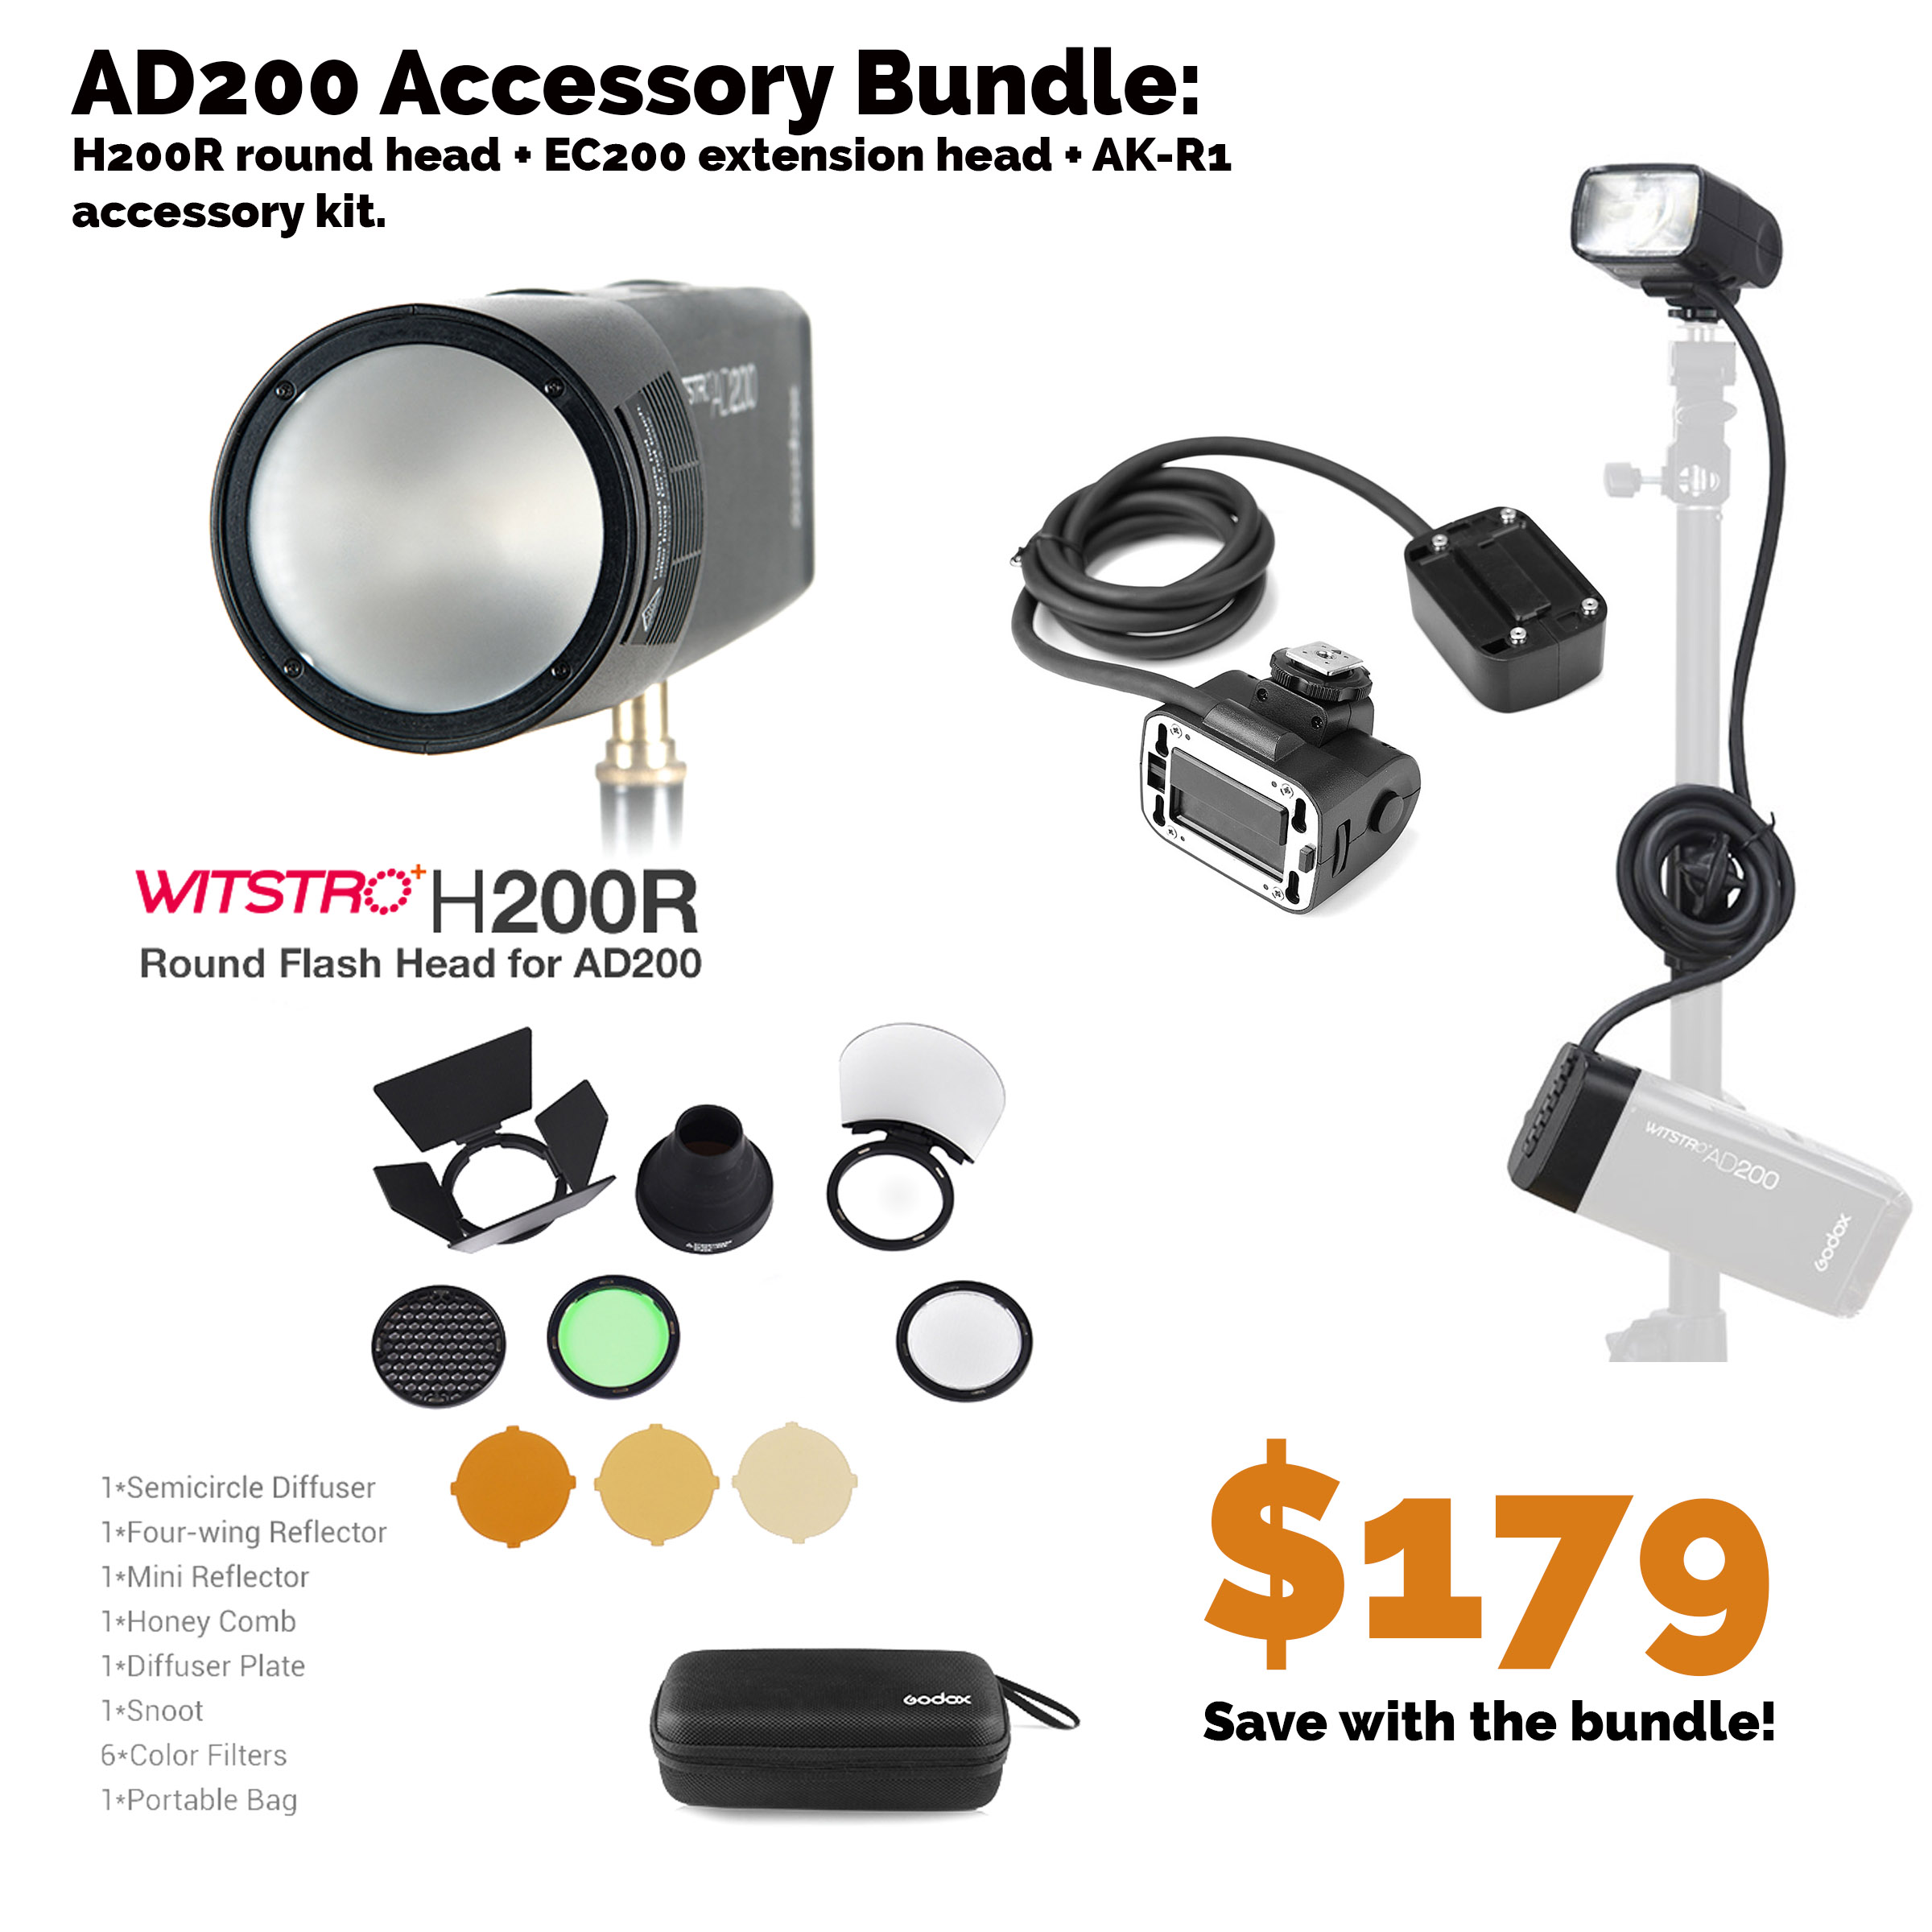 Bundle: Accessories for the AD200/AD200Pro